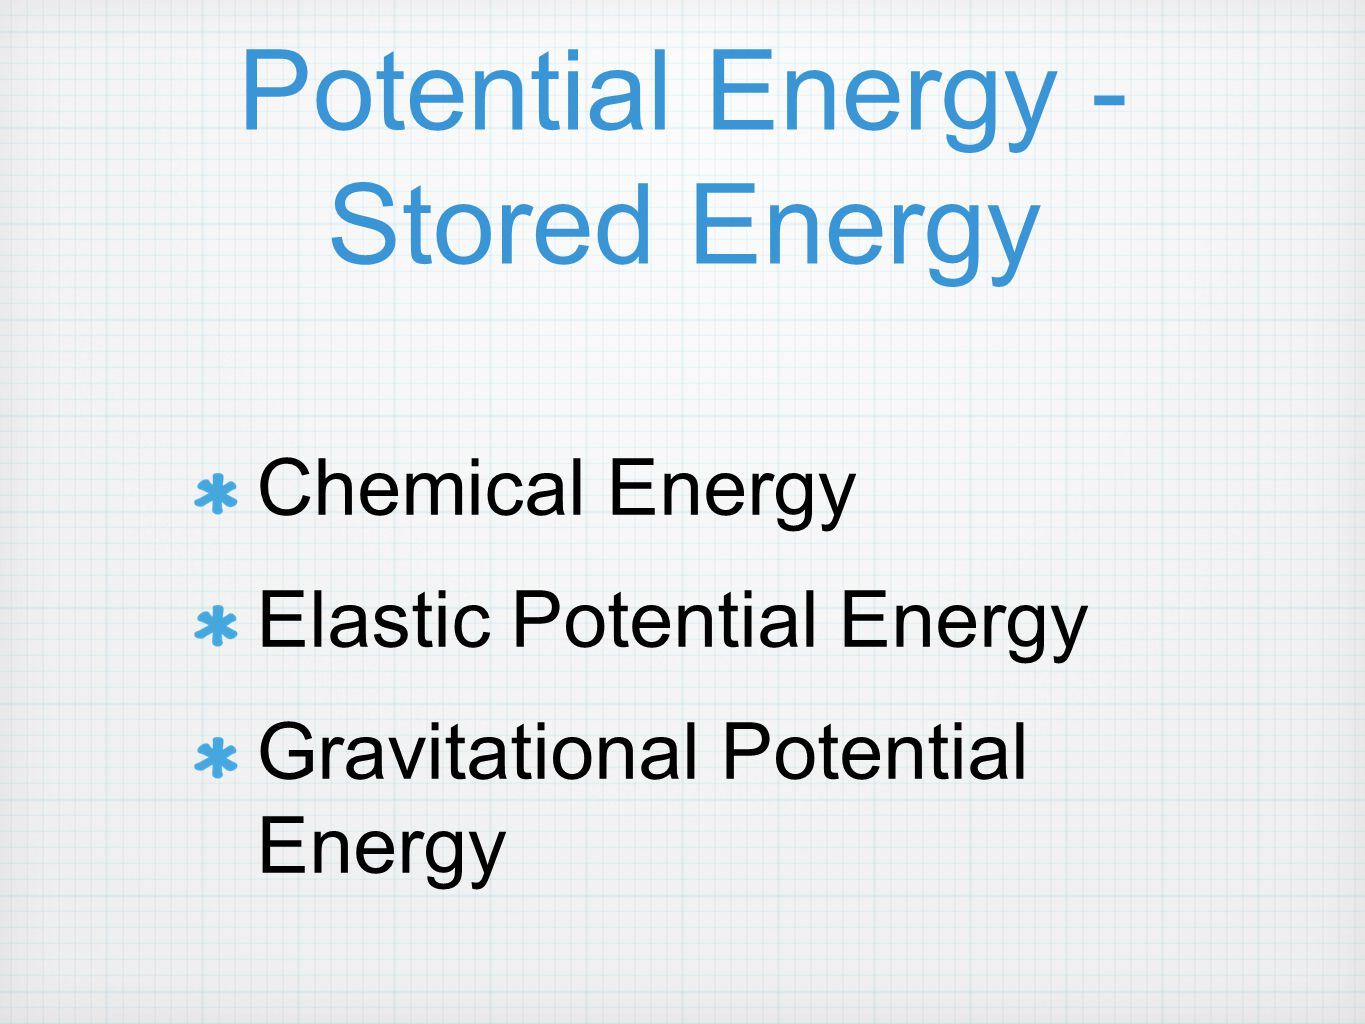 Potential Energy - Stored Energy